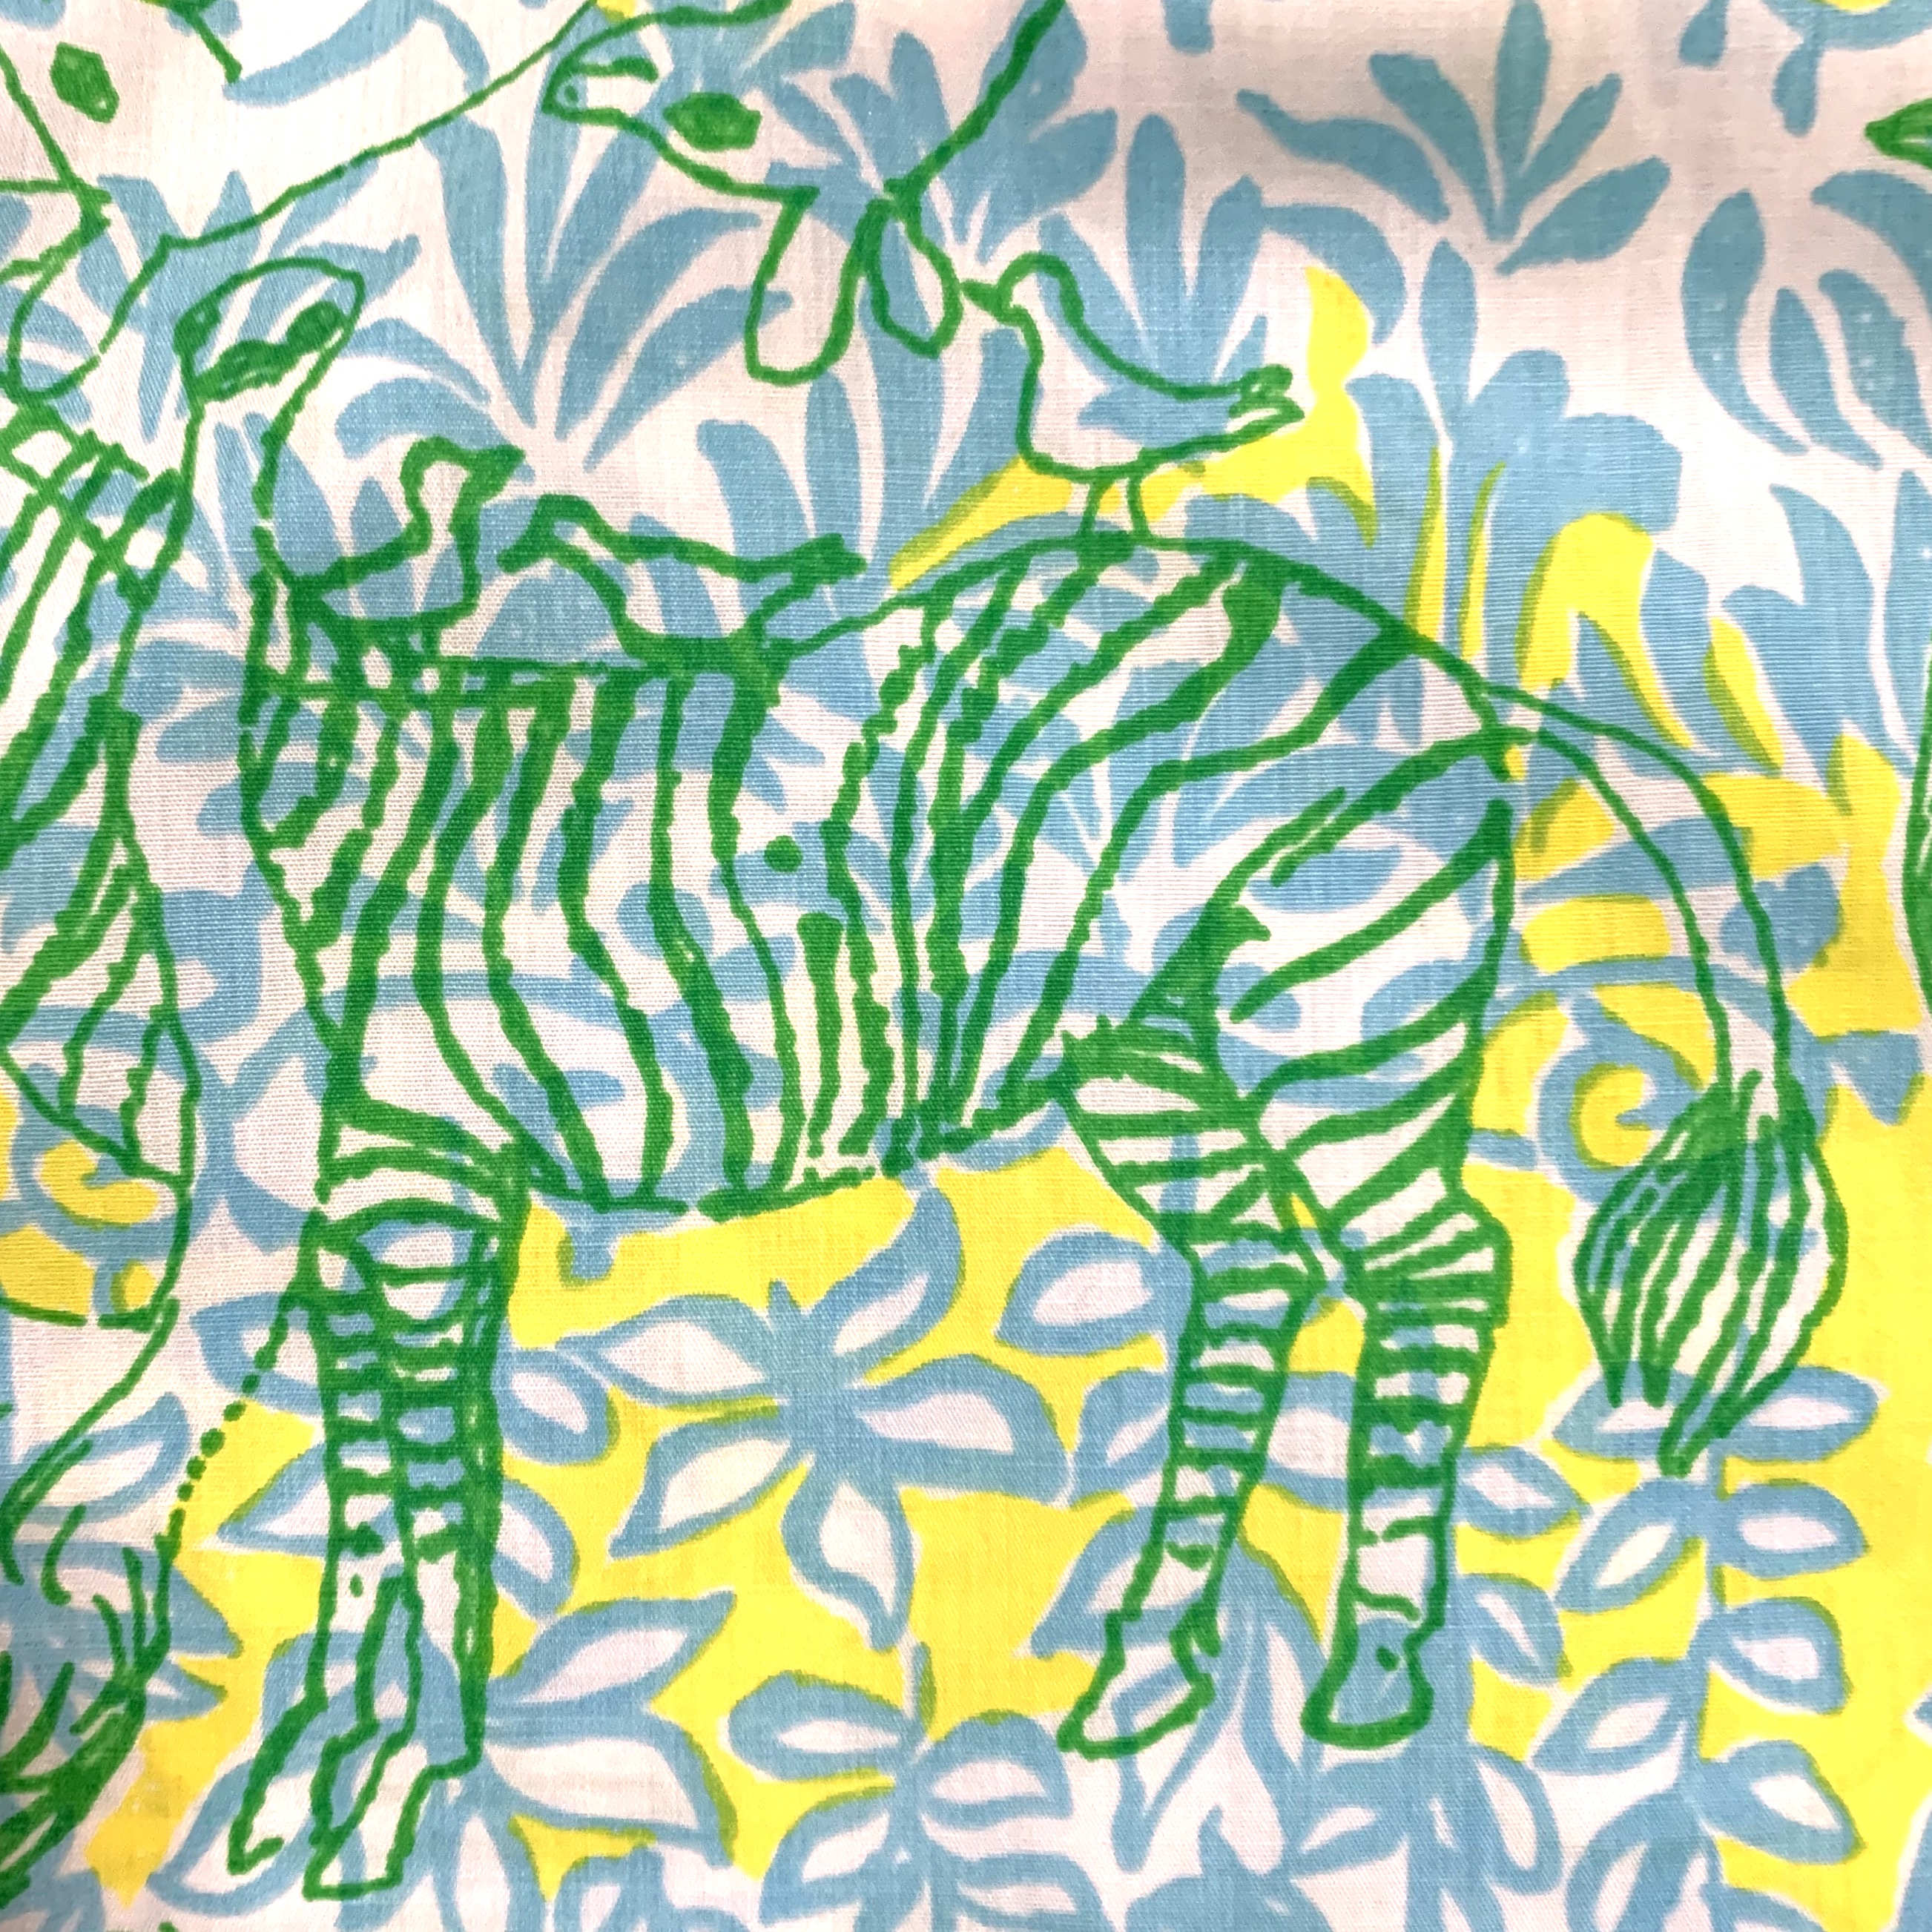 Vintage Lilly Pulitzer skirt, Safari by Zuzek Key West fabric, detail